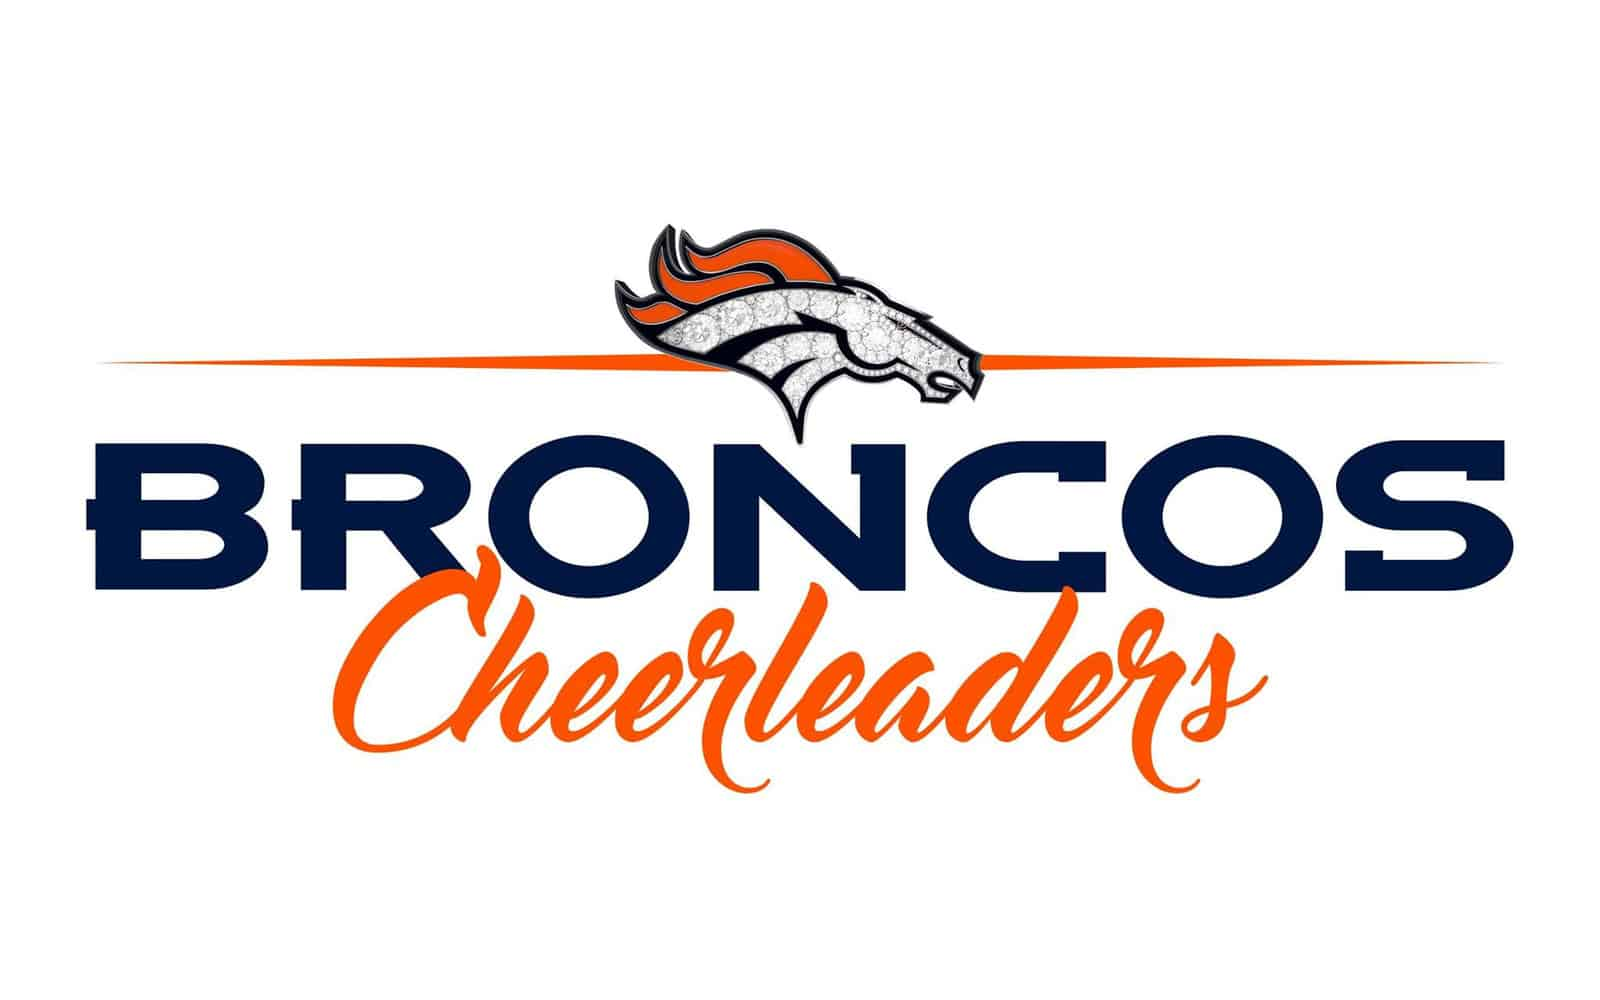 broncos-cheerleader-logo